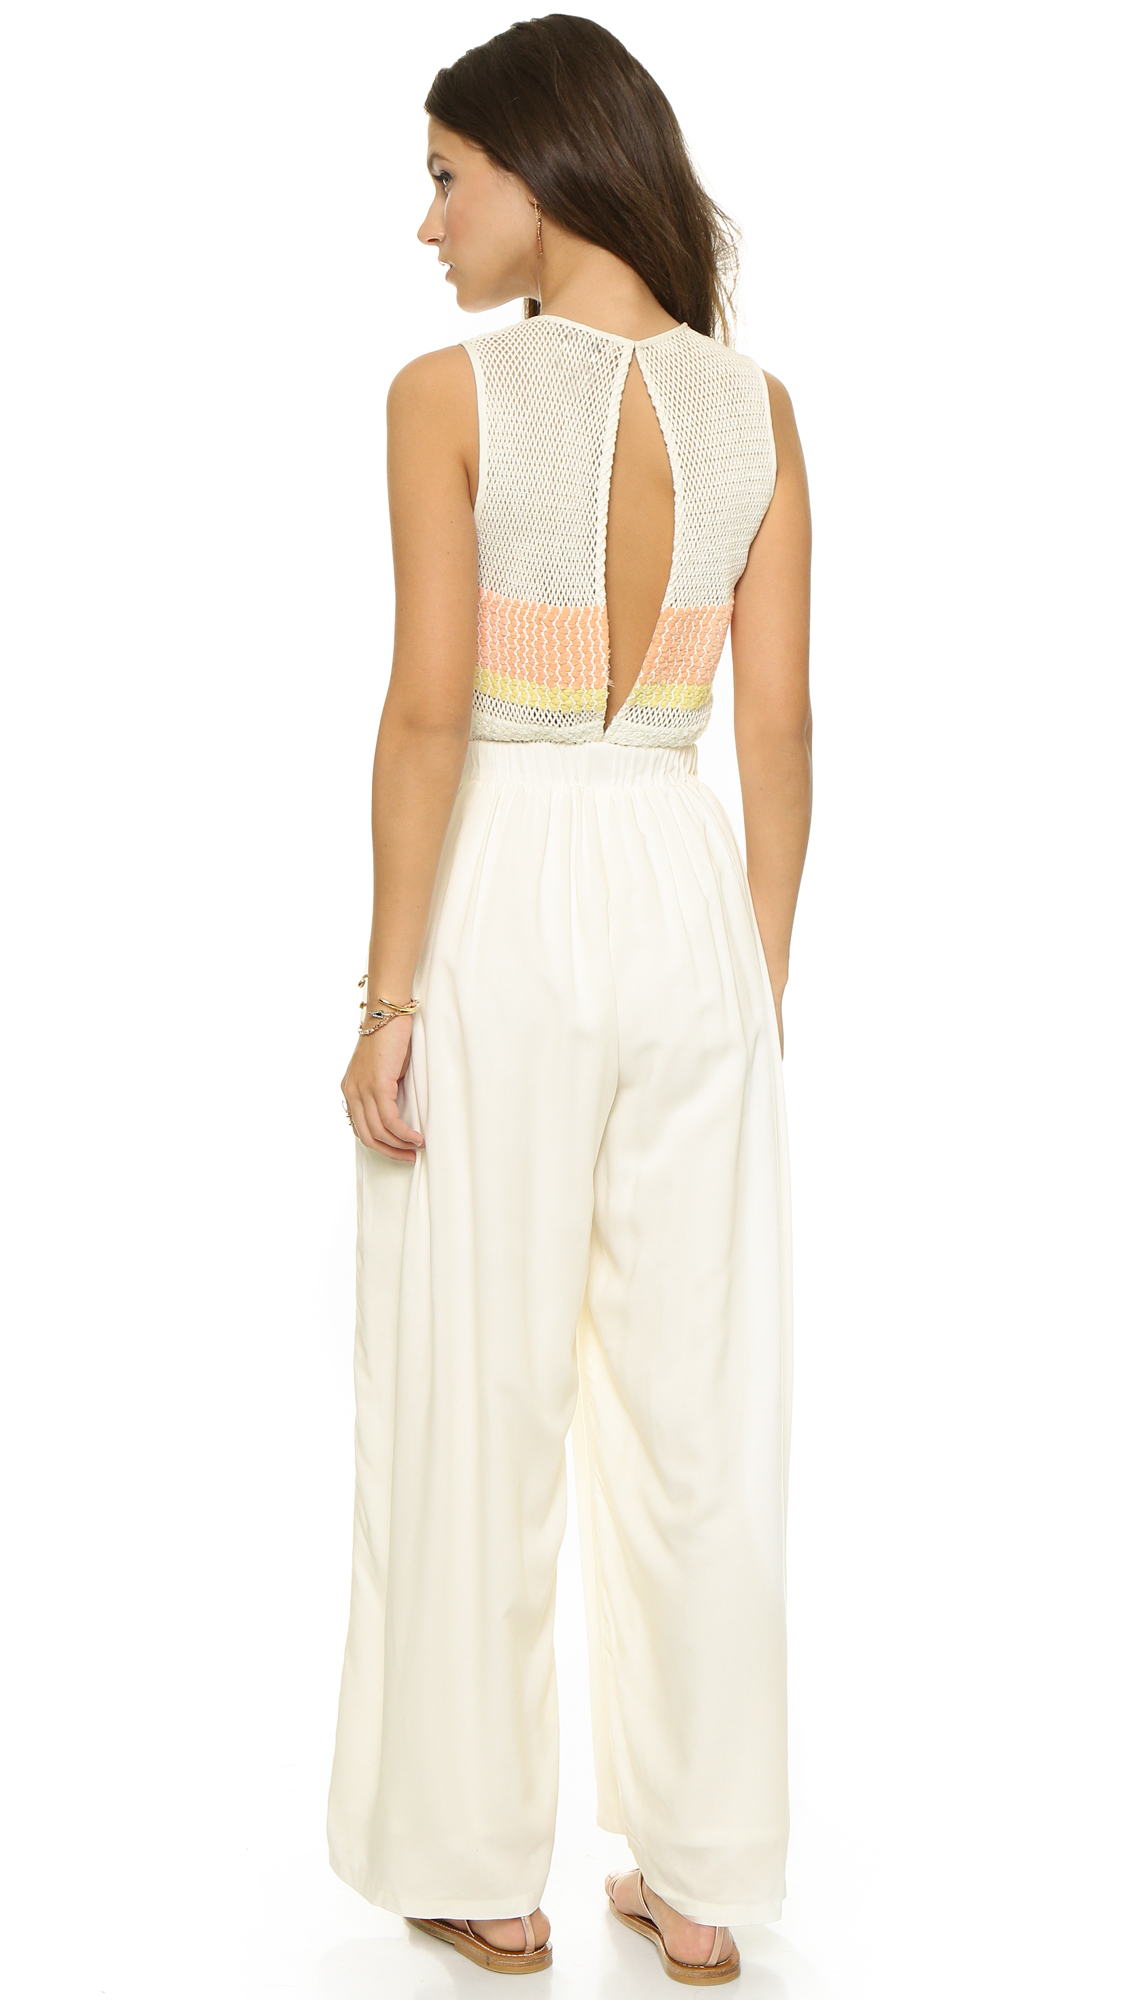 6f628a0cf60a Mara Hoffman Embellished Jumpsuit - White in Natural - Lyst